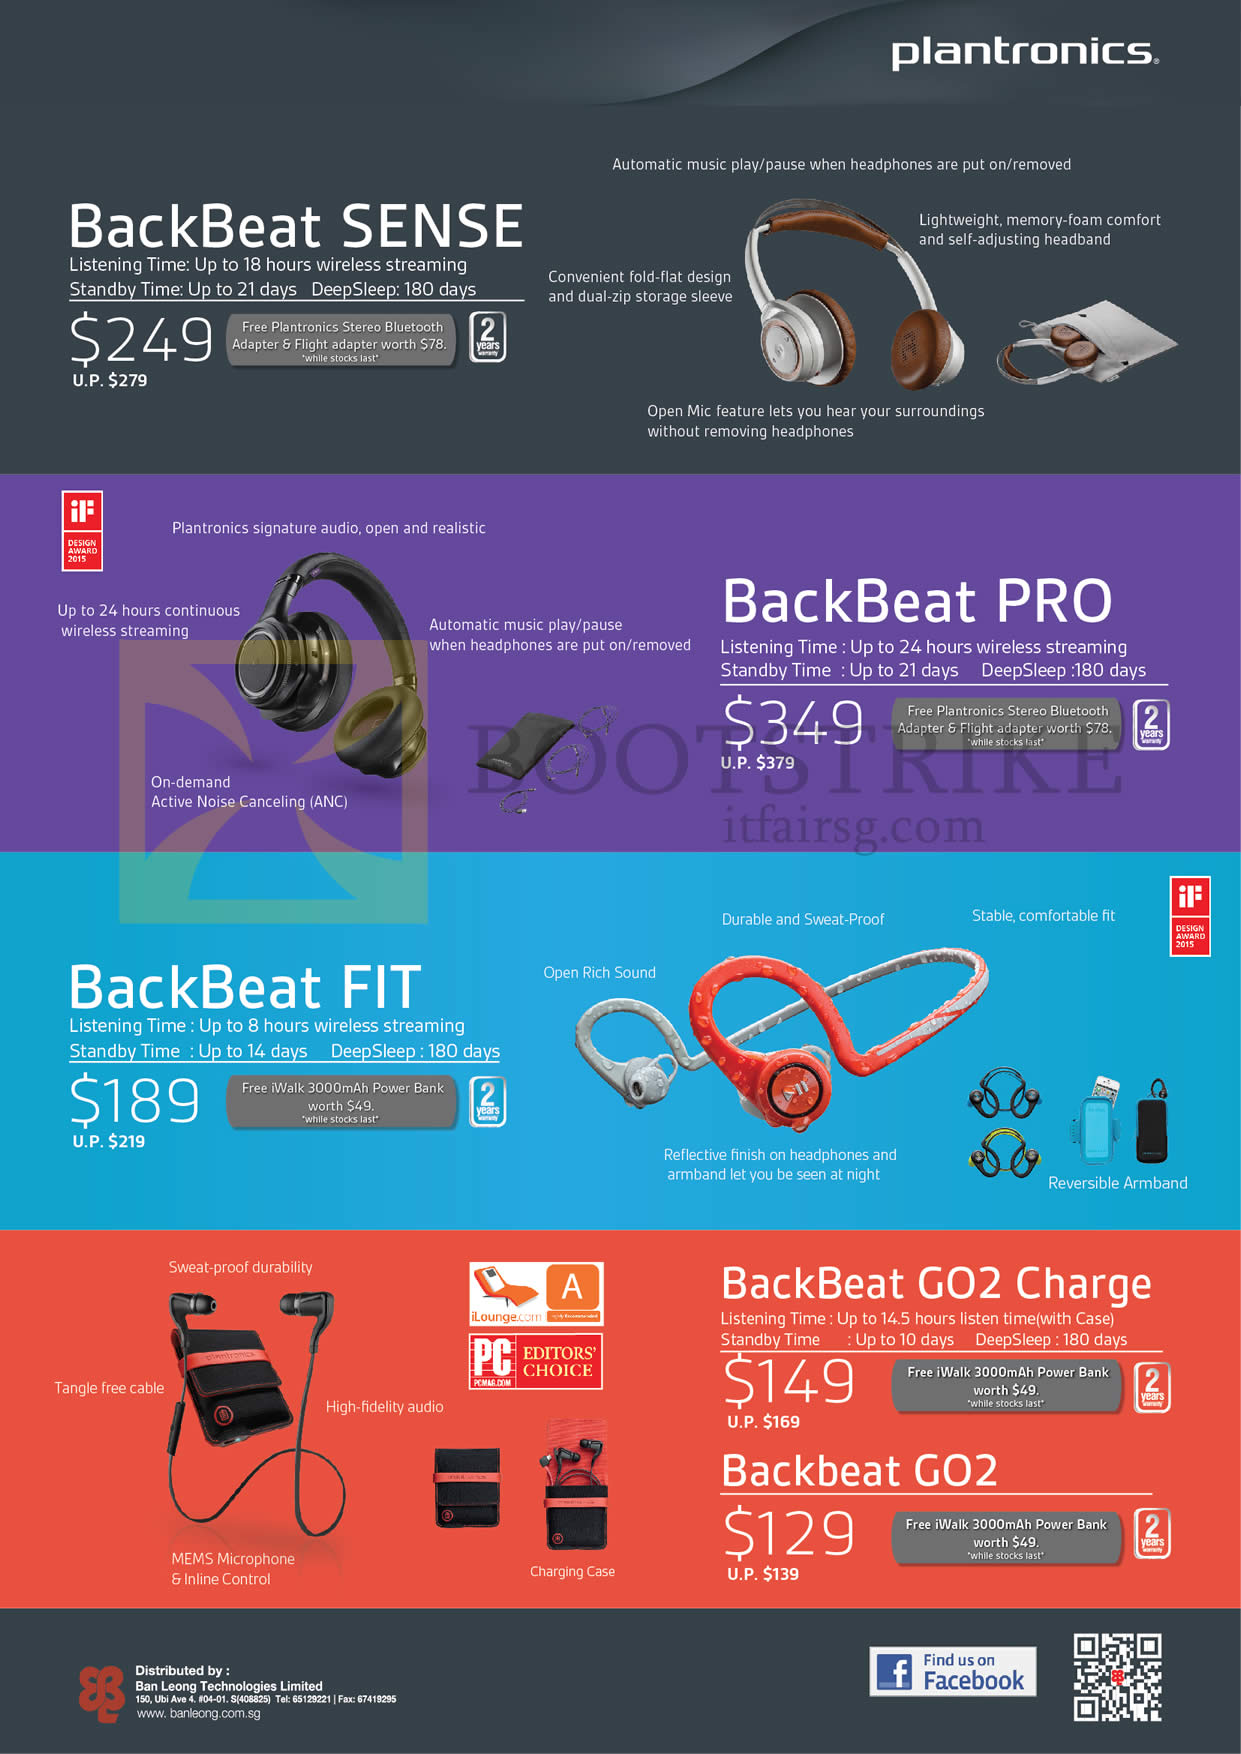 SITEX 2015 price list image brochure of Plantronics Bluetooth Headsets BackBeat Sense, Pro, Fit, GO2 Charge